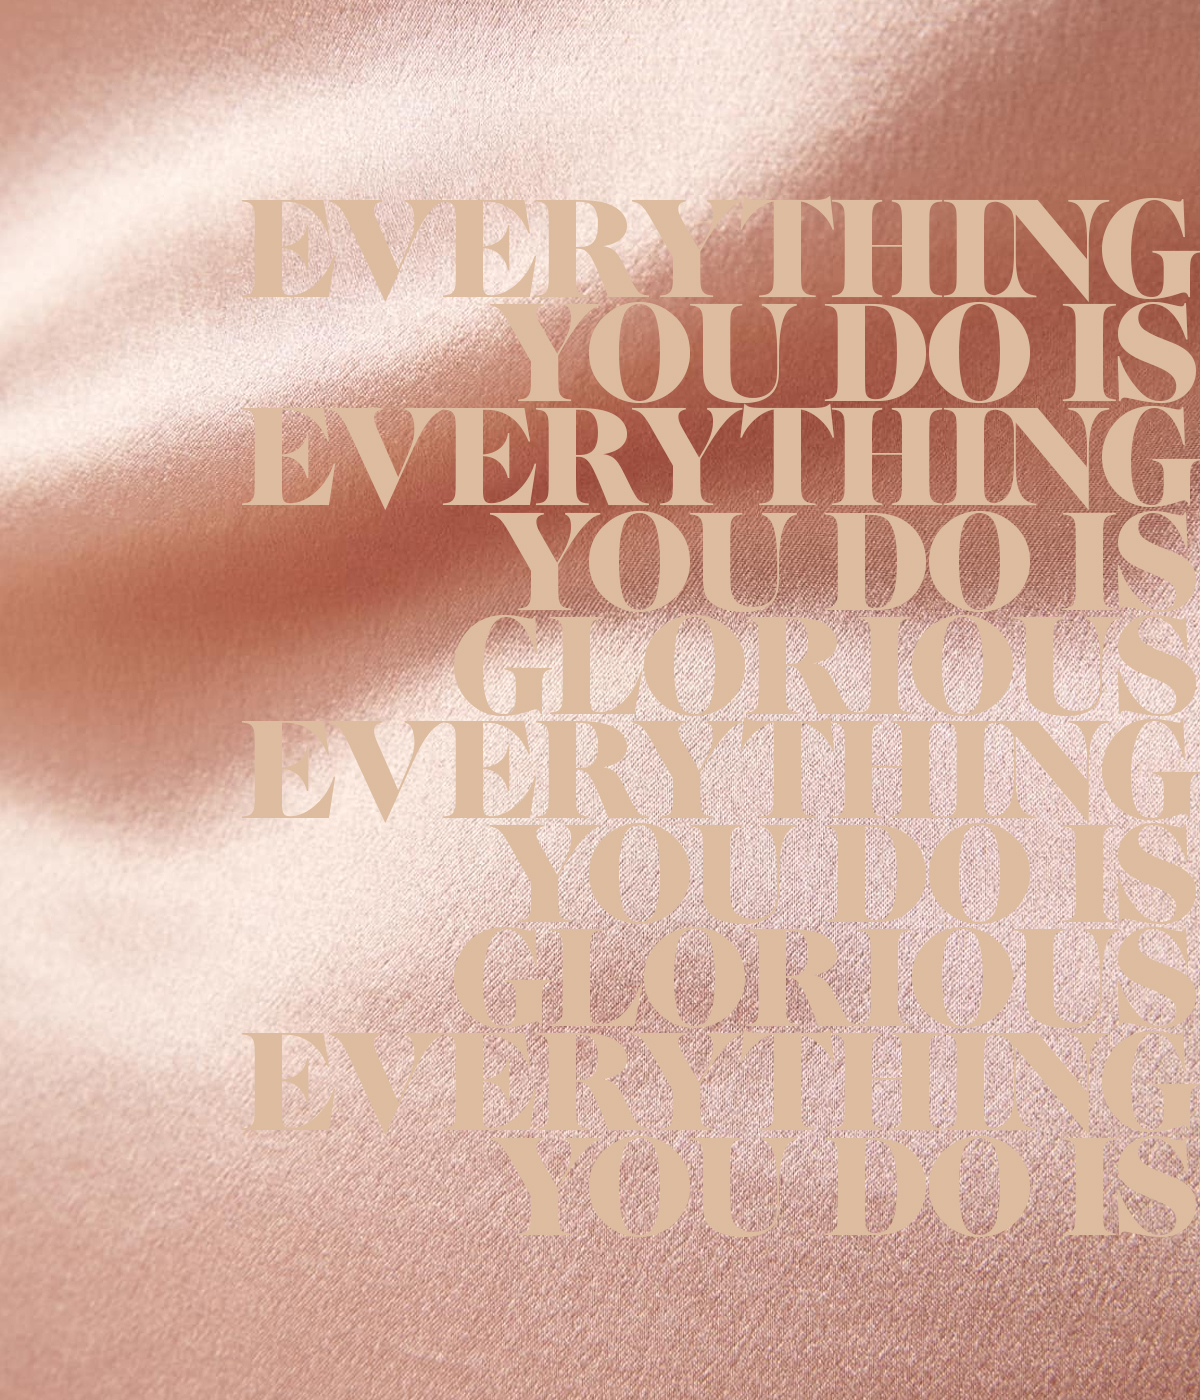 Everything You Do is Glorious